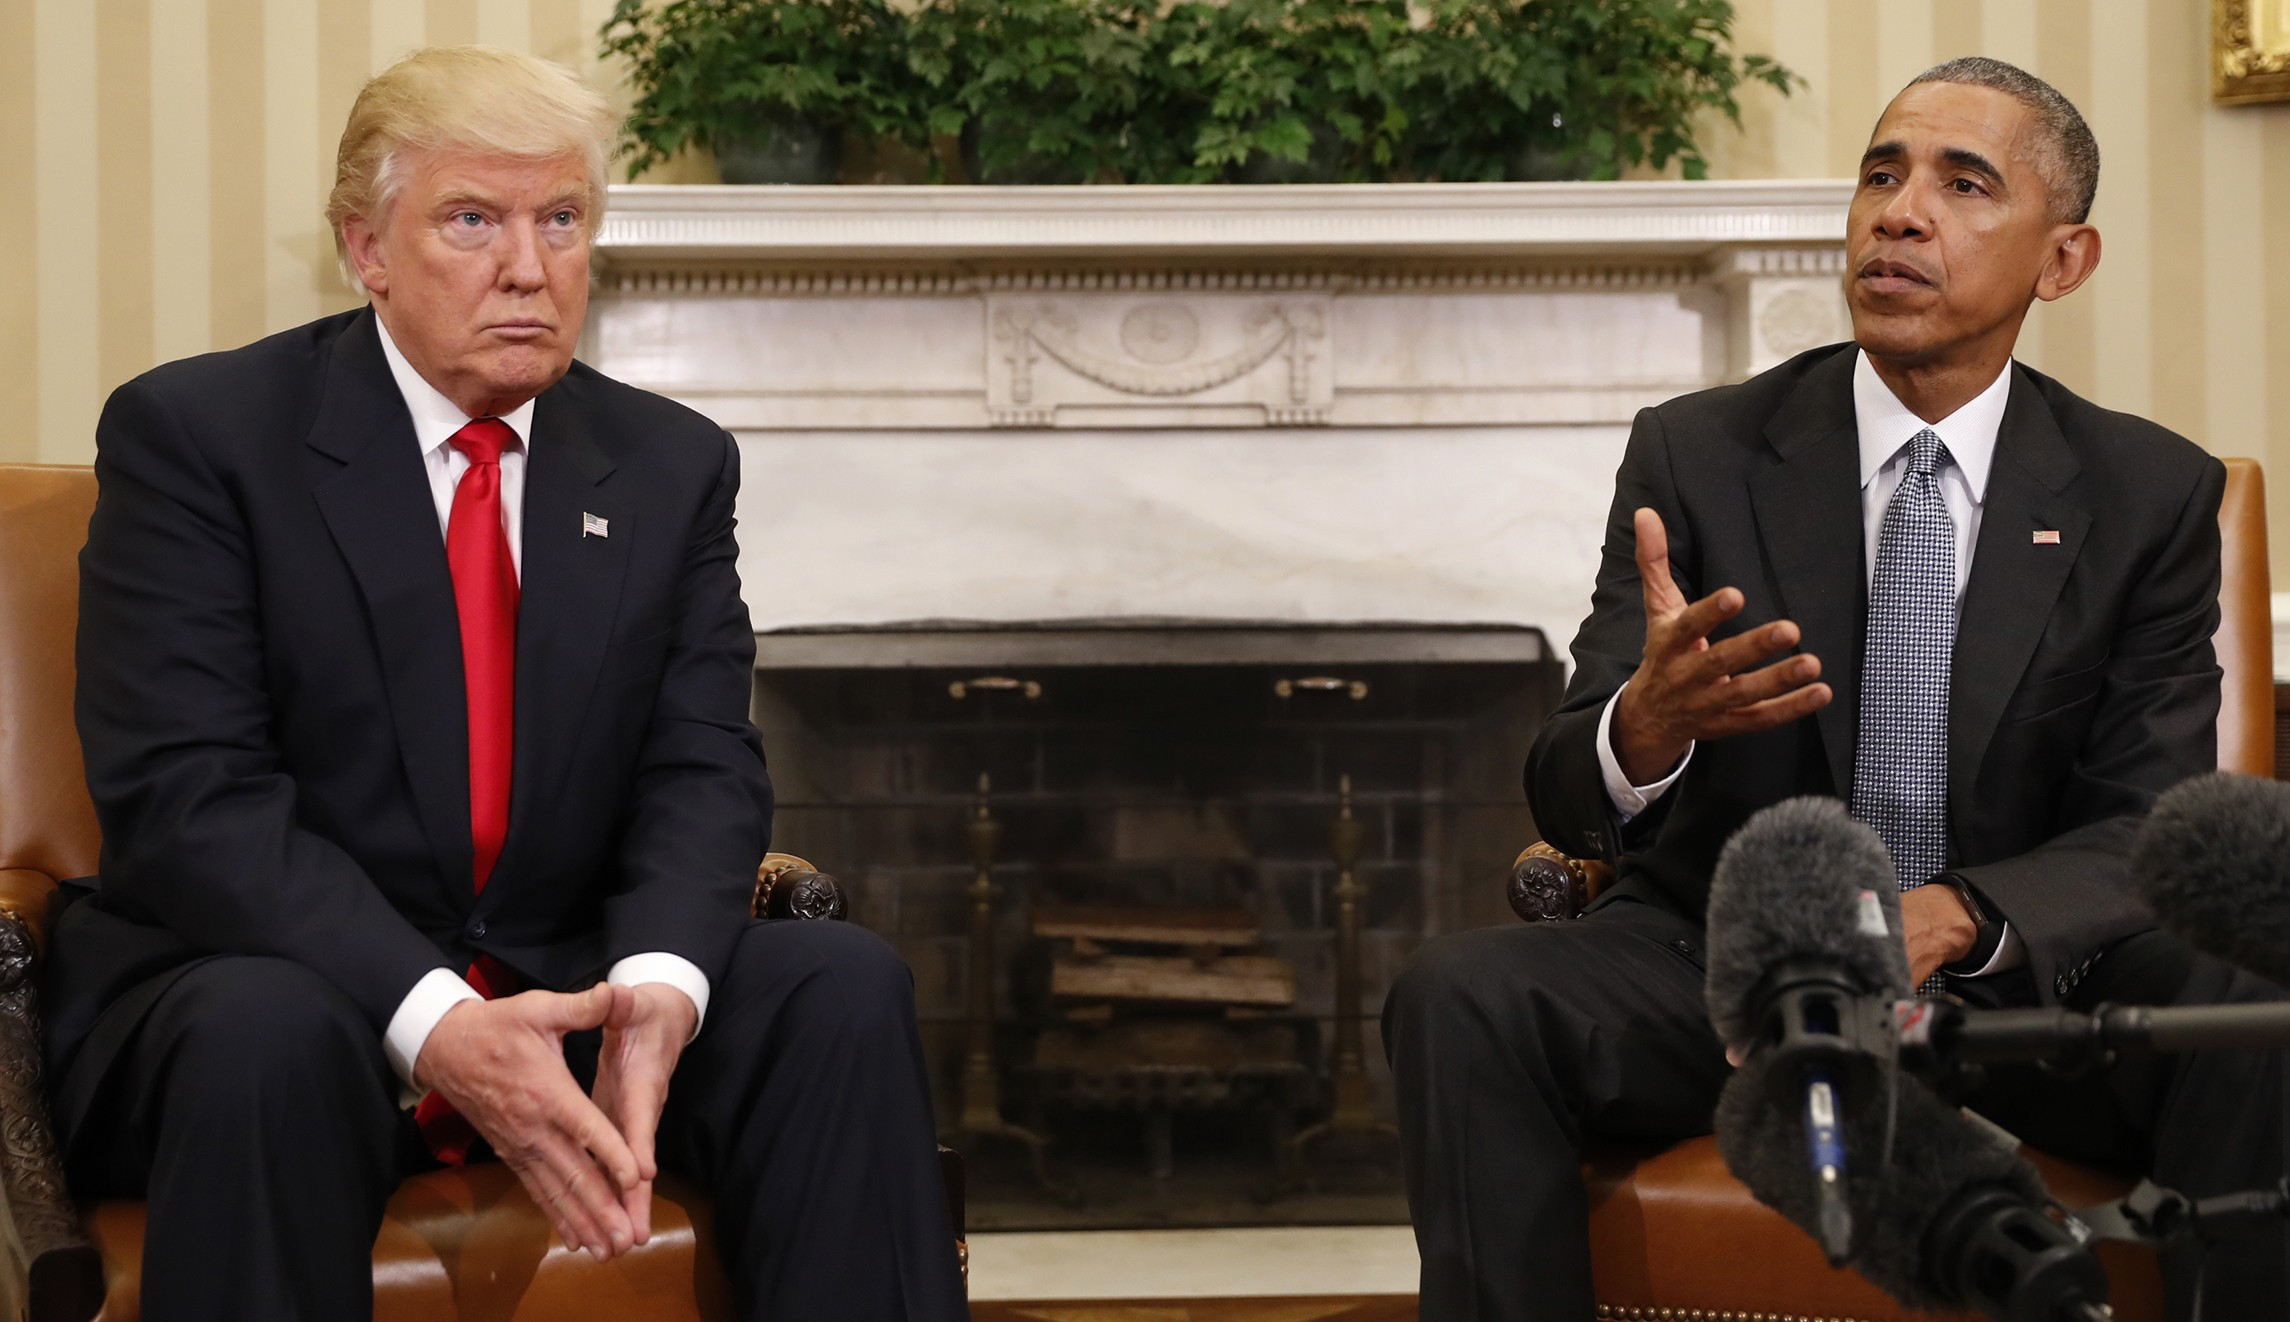 Obama Asked Trump to Help Cover Up His Illegal Spying Insiders Reveal